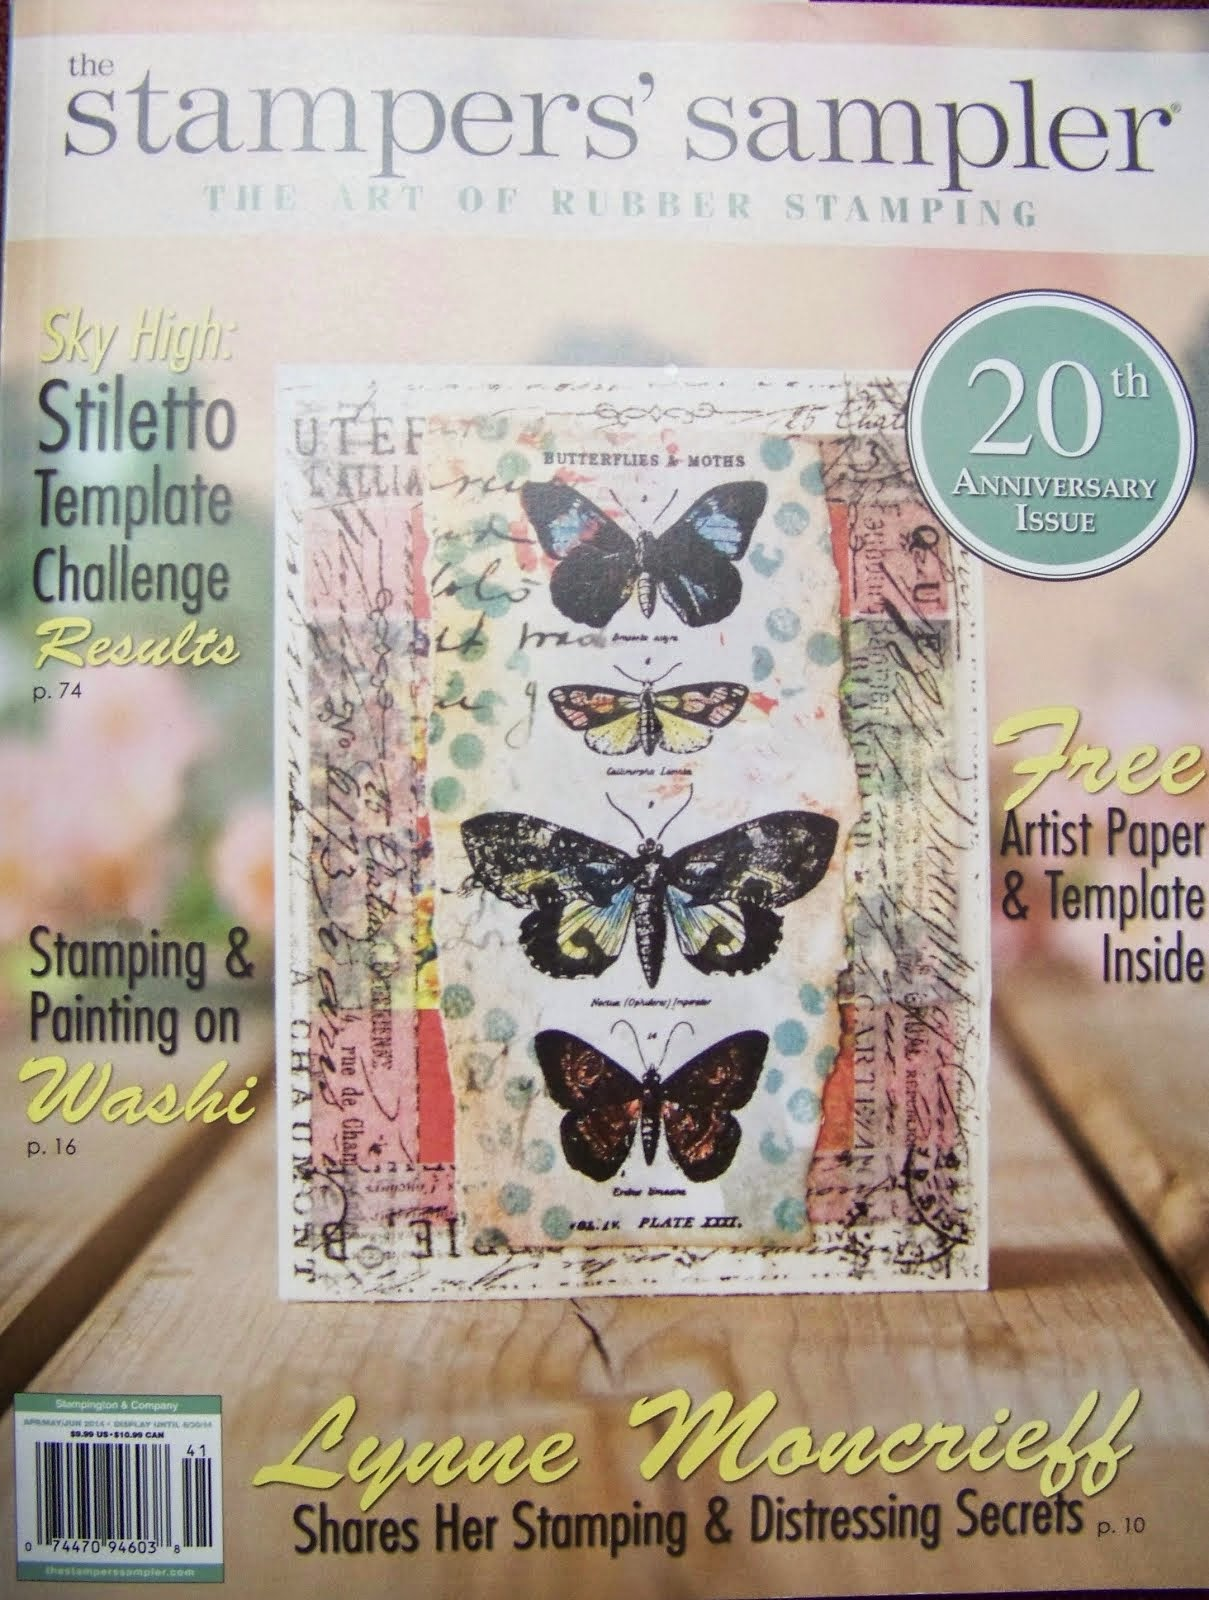 The Stampers Sampler Spring 2014